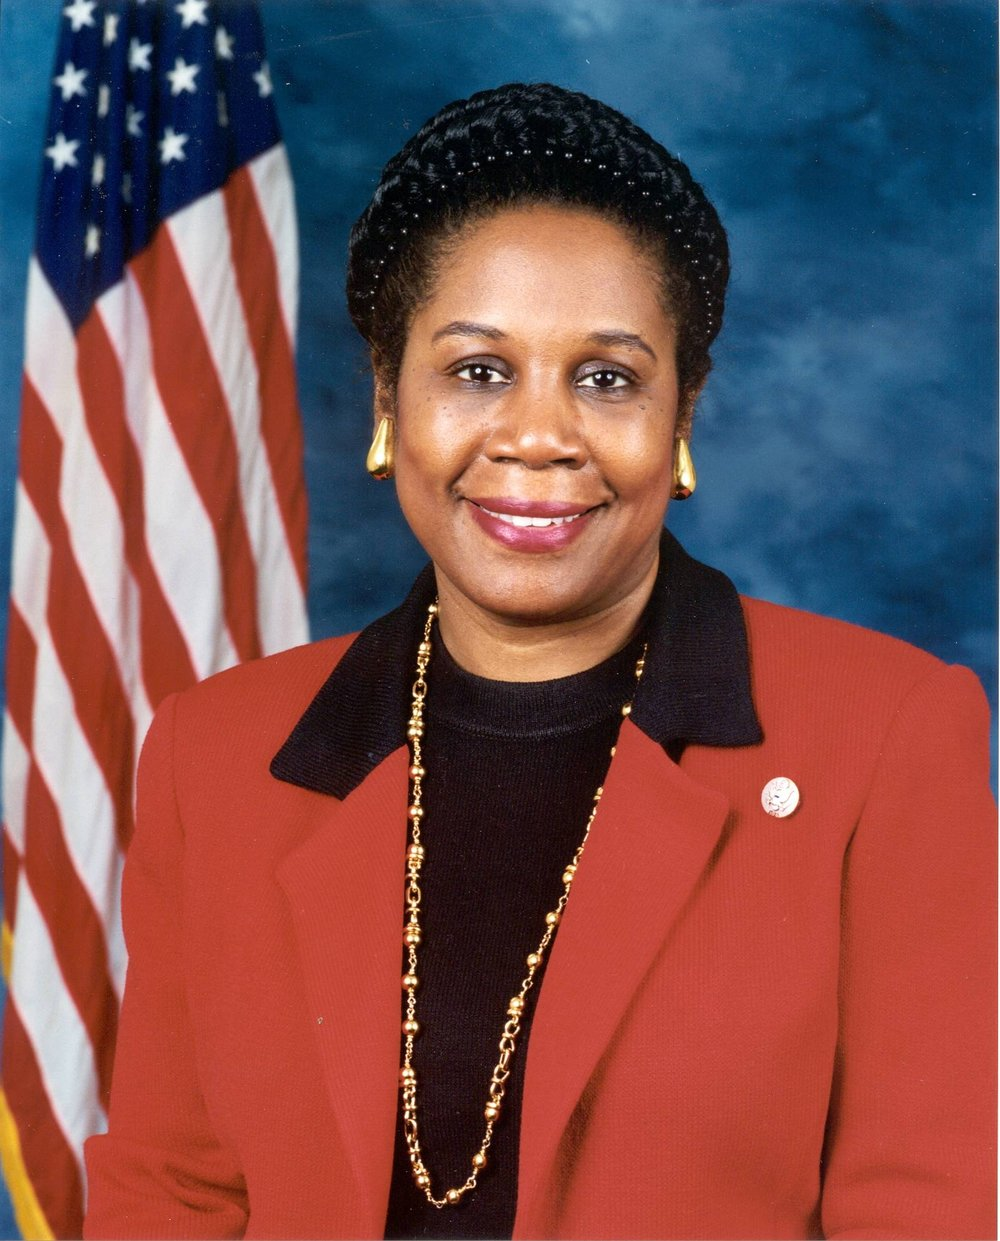 United States Congresswoman, District 18 - Shelia Jackson LeeShelia Jackson Lee represents the 18th U.S. Congressional District of Texas, which includes Sunset Heights. She has held her seat since 1995, and is active in serving the constituents across four offices within the 18th District.Heights Office: 420 W. 19th Street, Houston, TX 77008Office: 713-861-4070